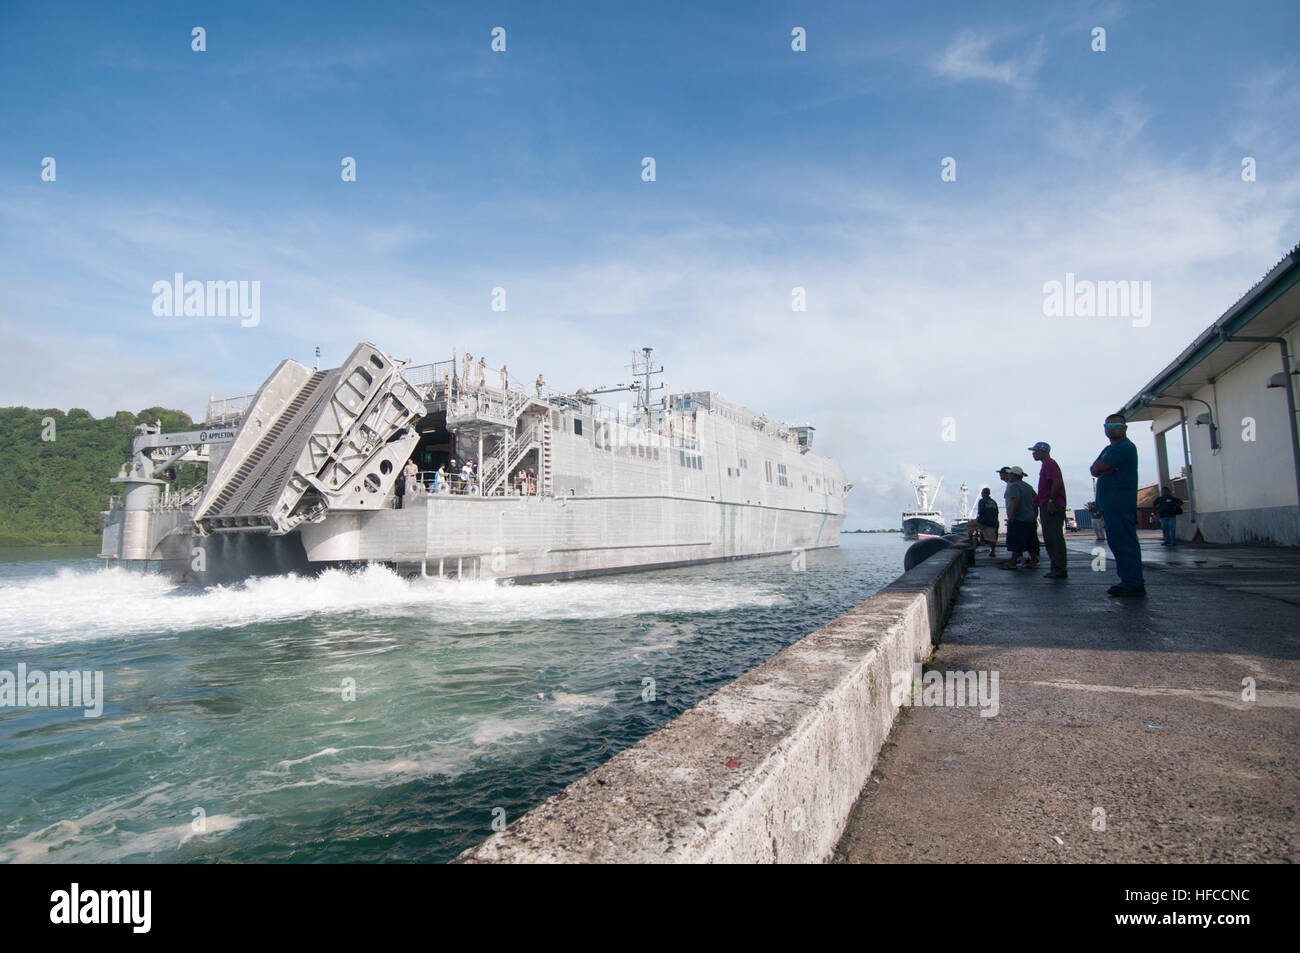 150621-N-TW039-034  Kolonia, POHNPEI  (June 21, 2015) - The Military Sealift Command joint high speed vessel USNS - Stock Image